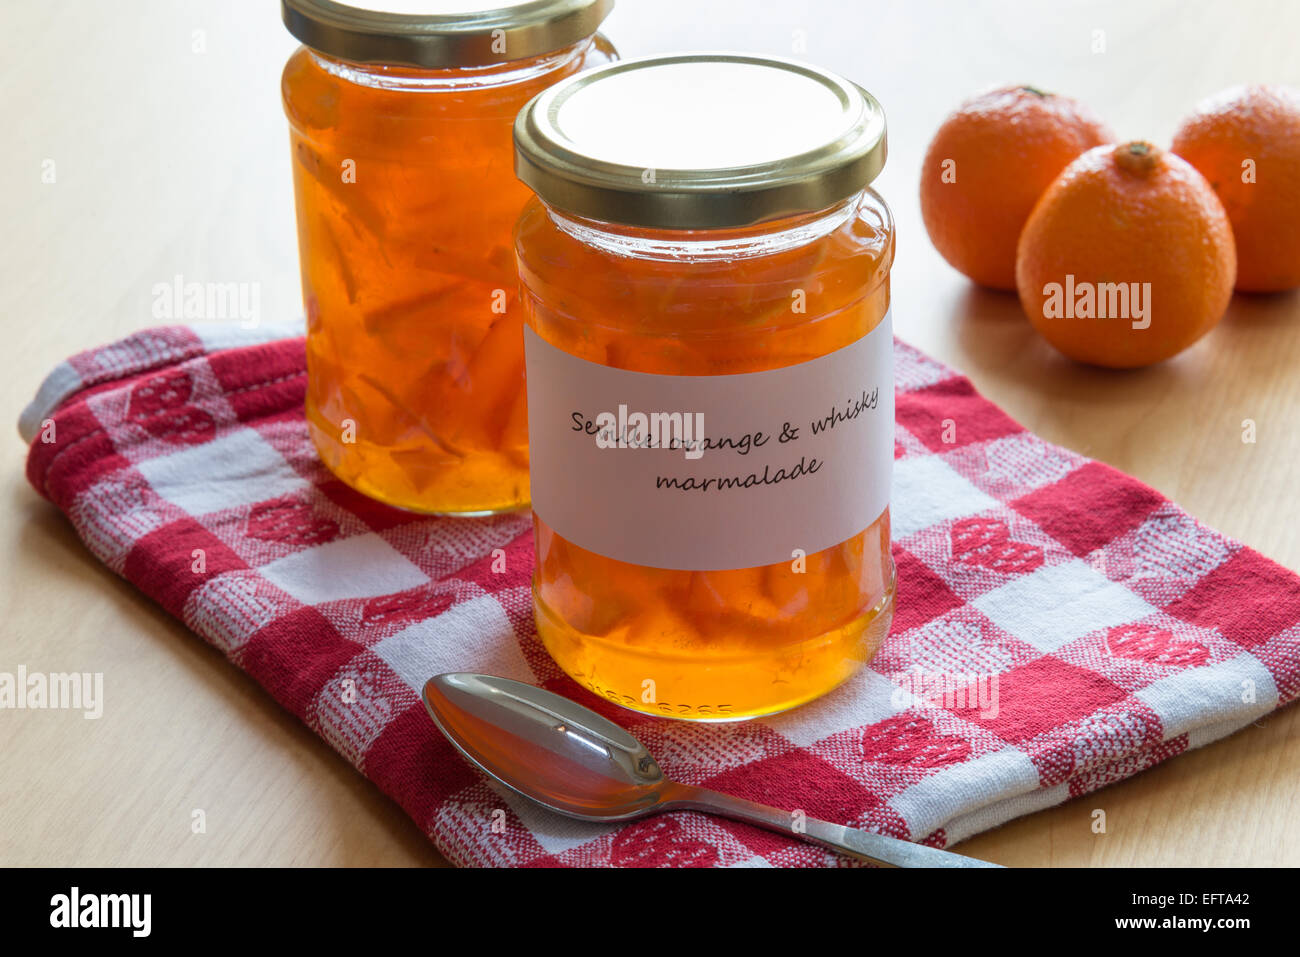 Jars of homemade Seville orange and whisky marmalade. - Stock Image